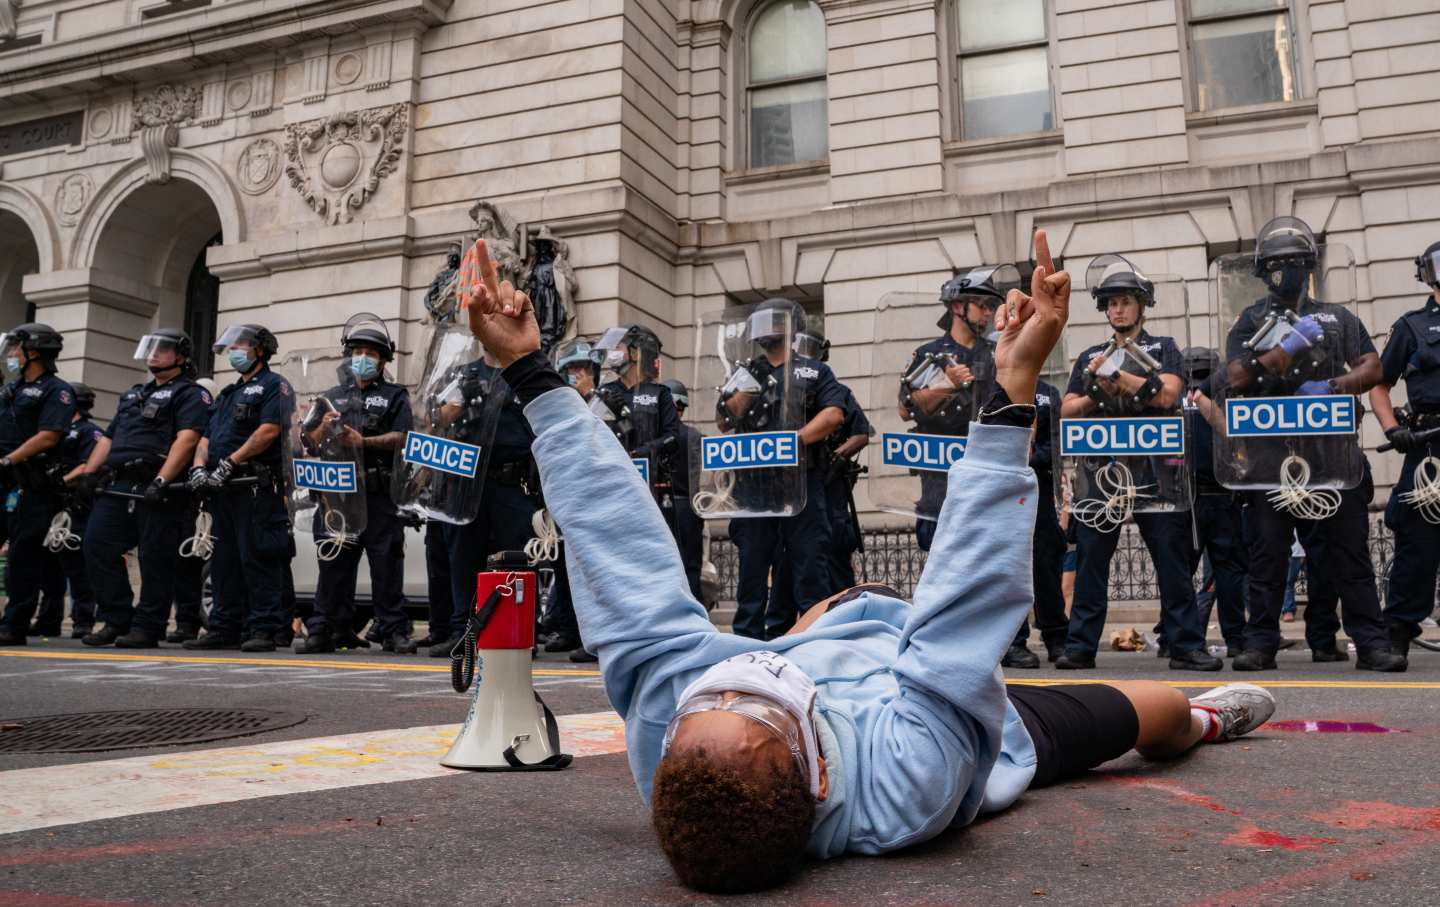 A person lies on the ground in front of a group of police officers